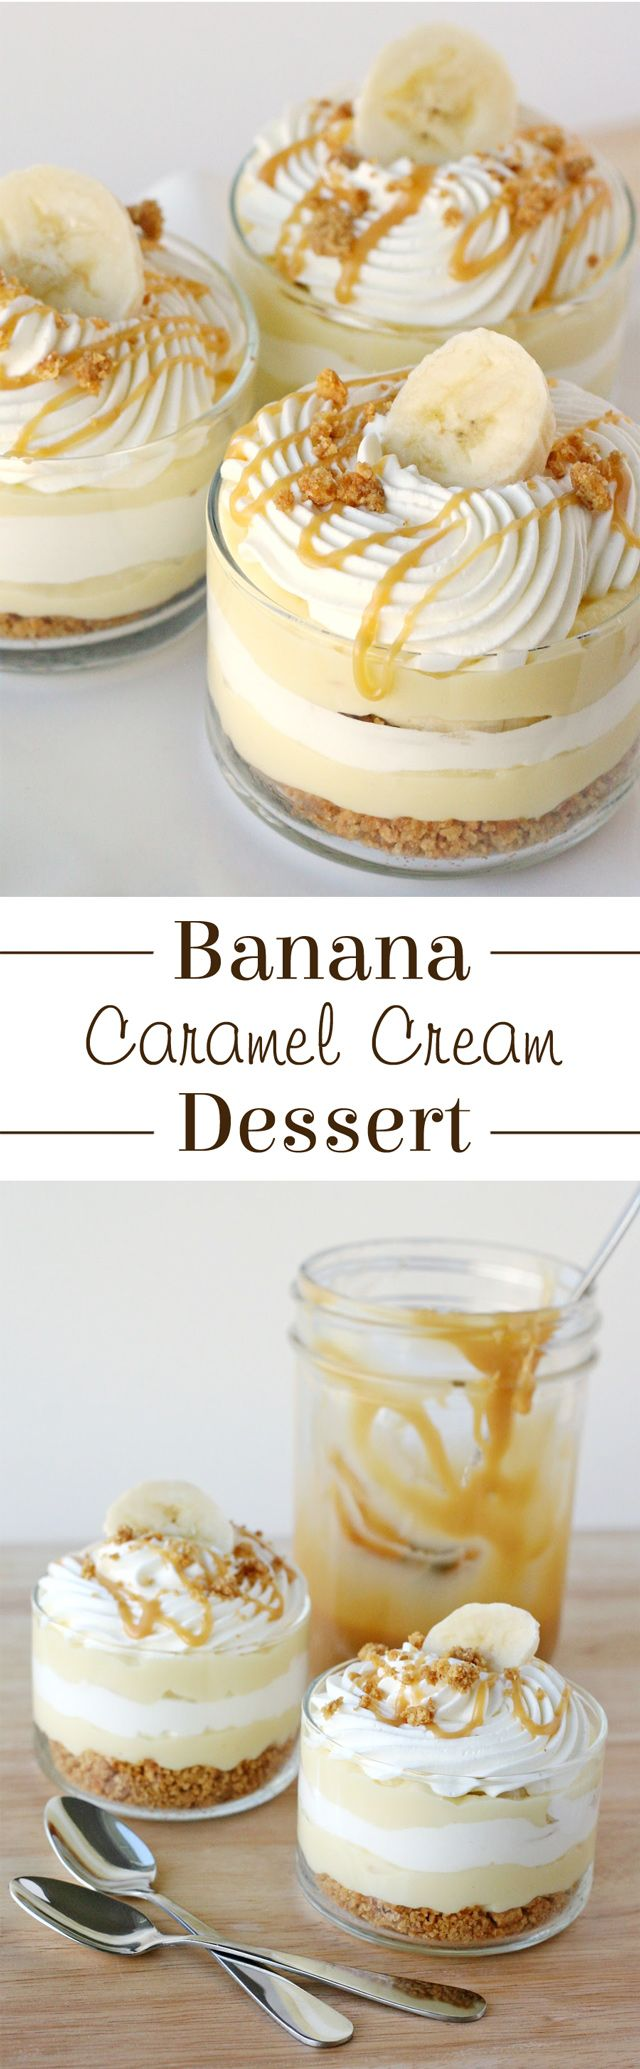 Banana Caramel Cream Dessert - Glorious Treats